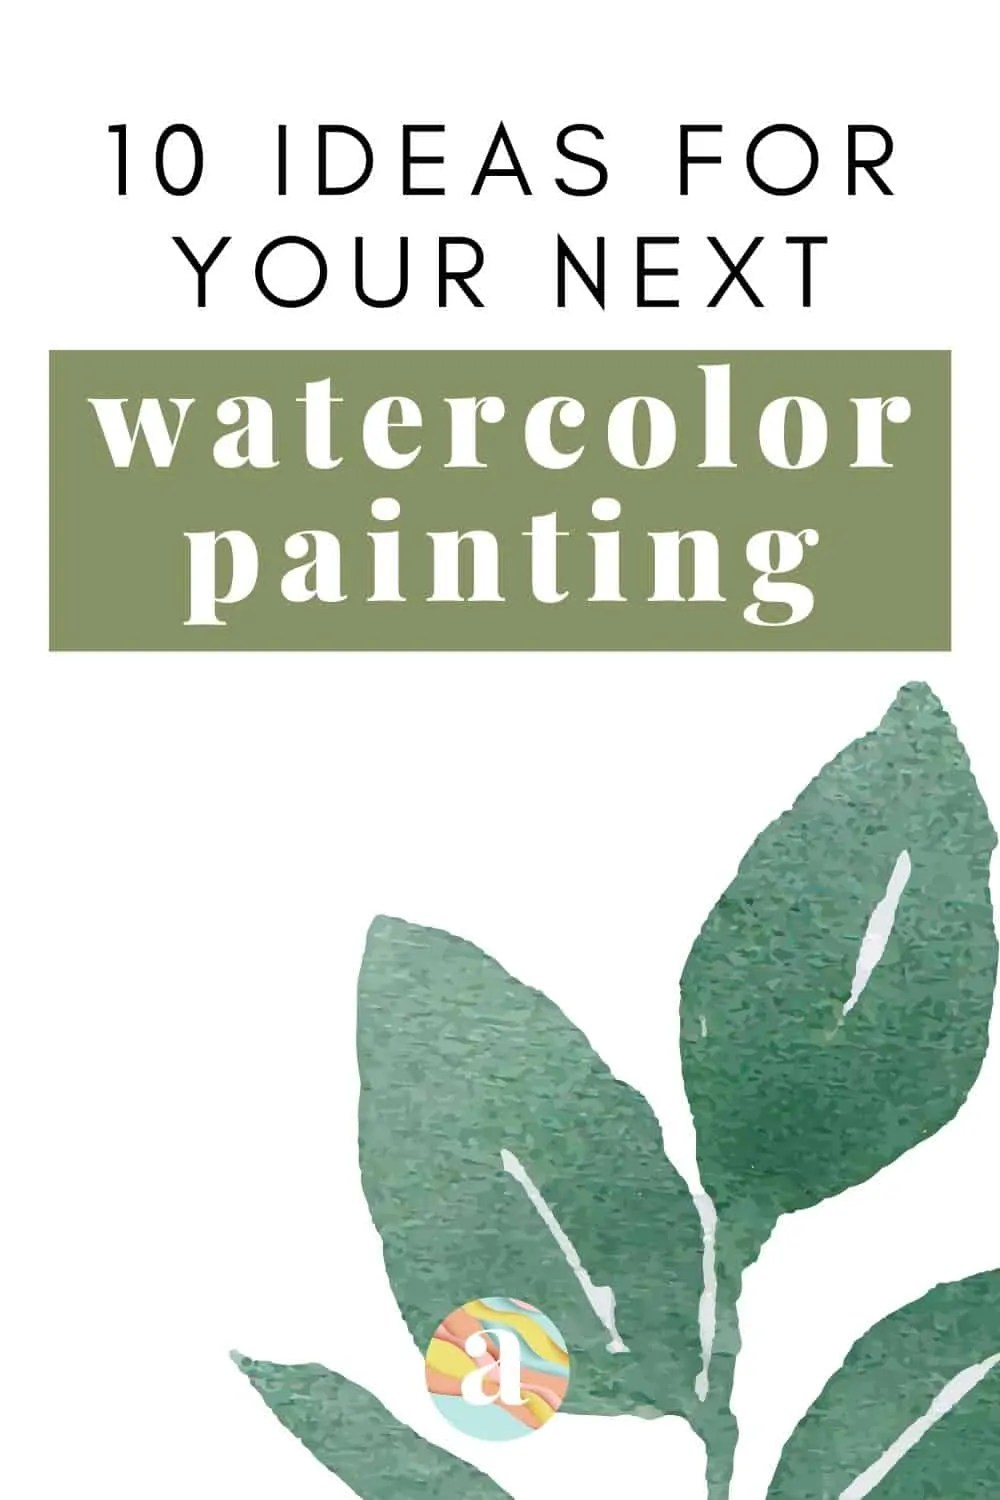 10 Ideas for Your Next Watercolor Painting 27